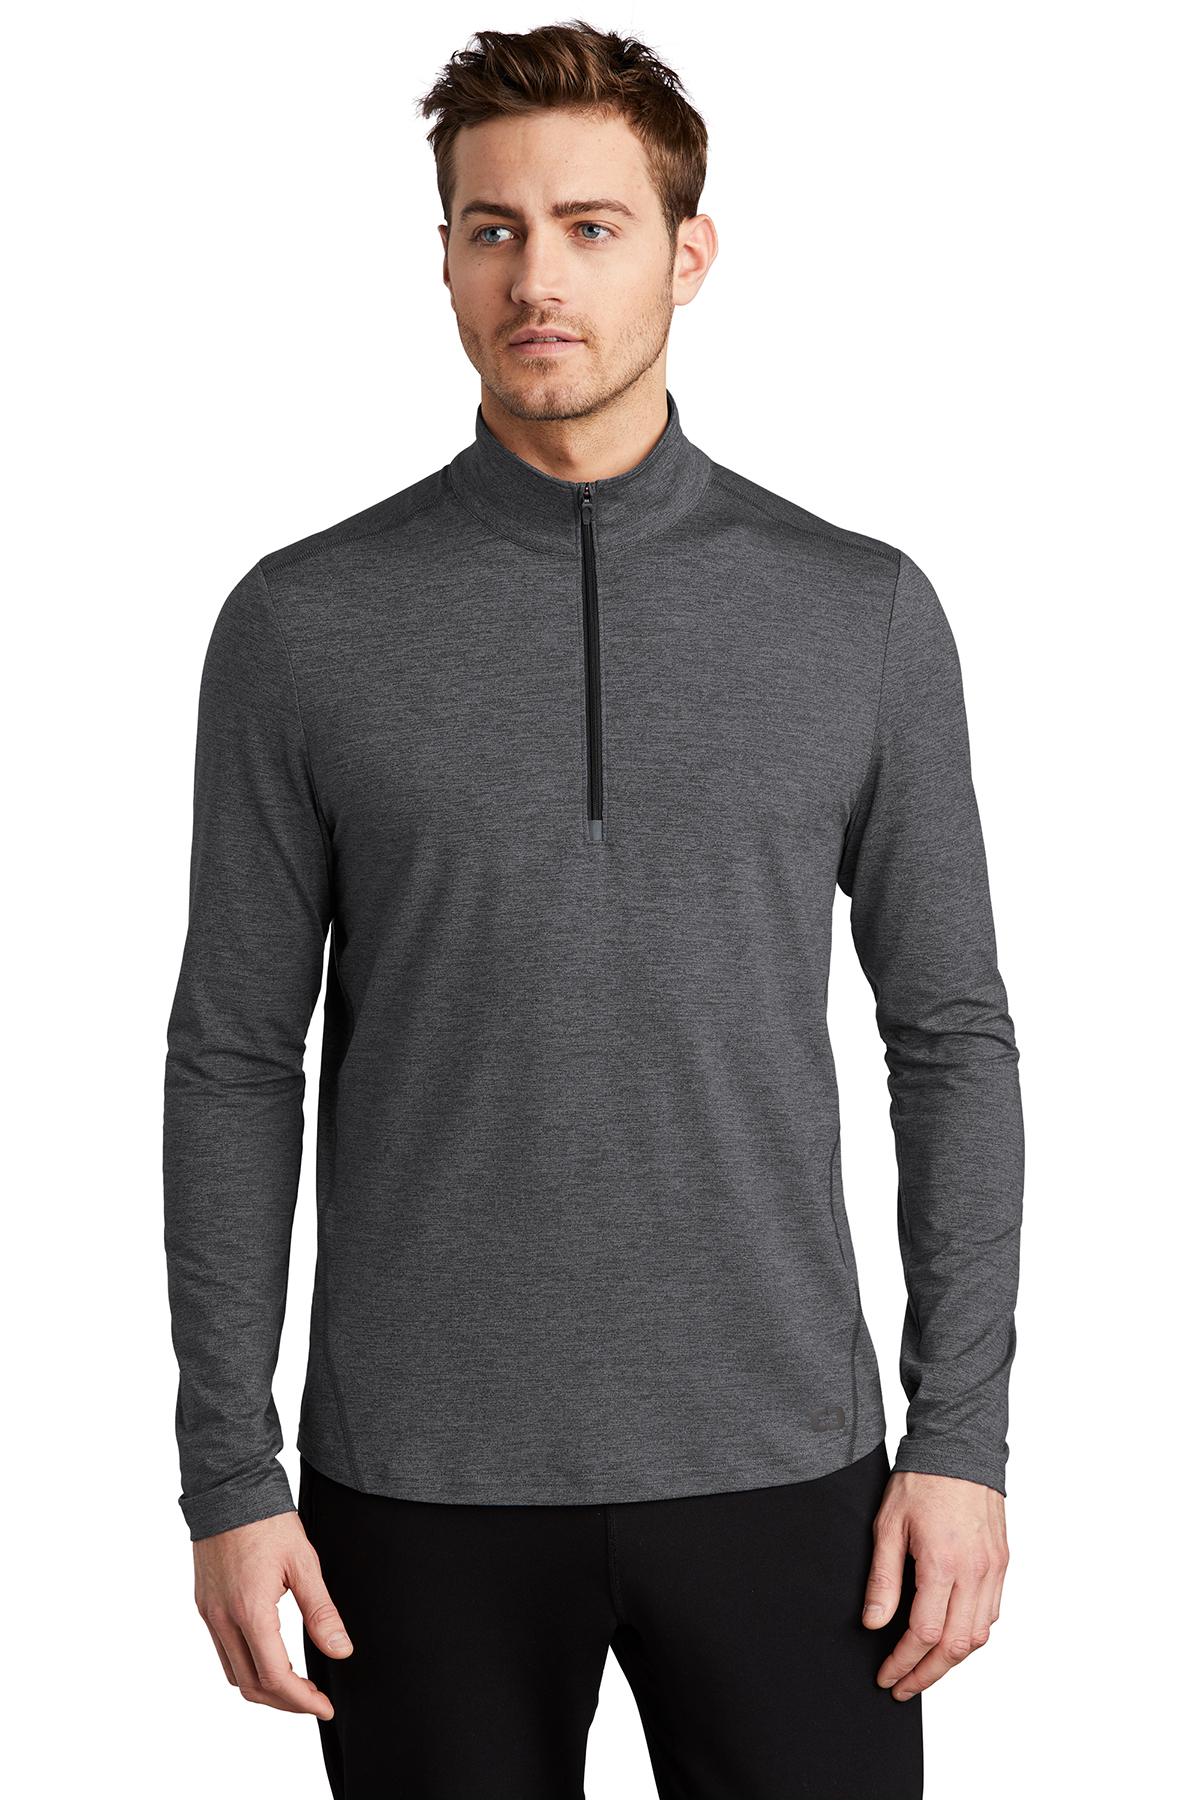 OGIO ENDURANCE OE341 - Force 1/4-Zip